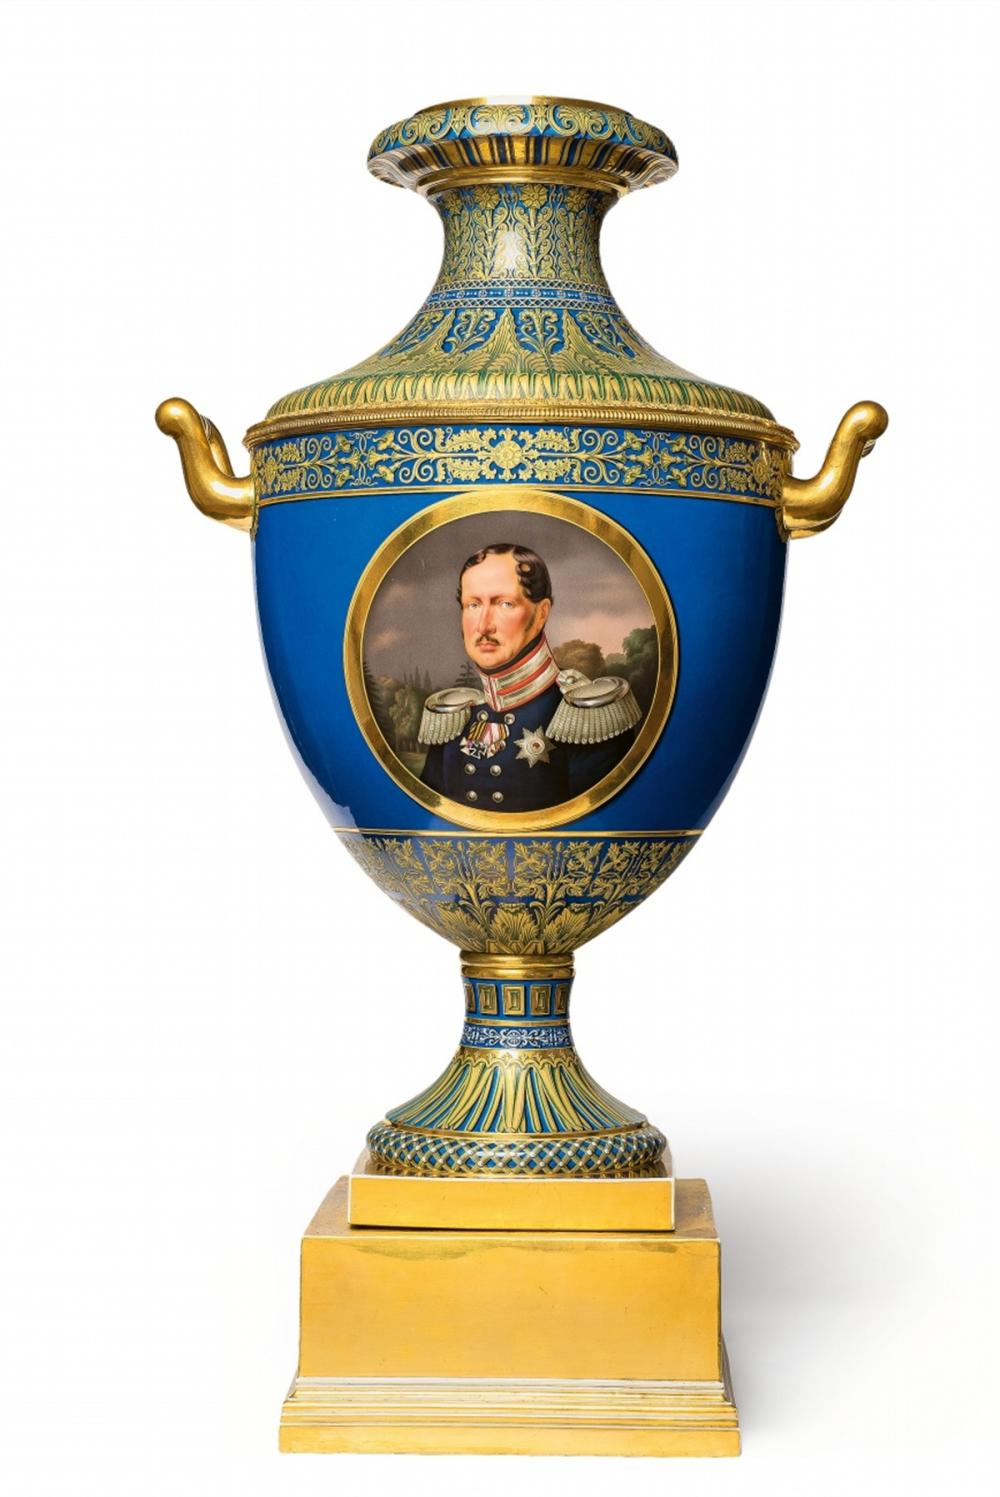 Vase for the King of Hanover, KPM Berlin, 1842, picture © Lempertz